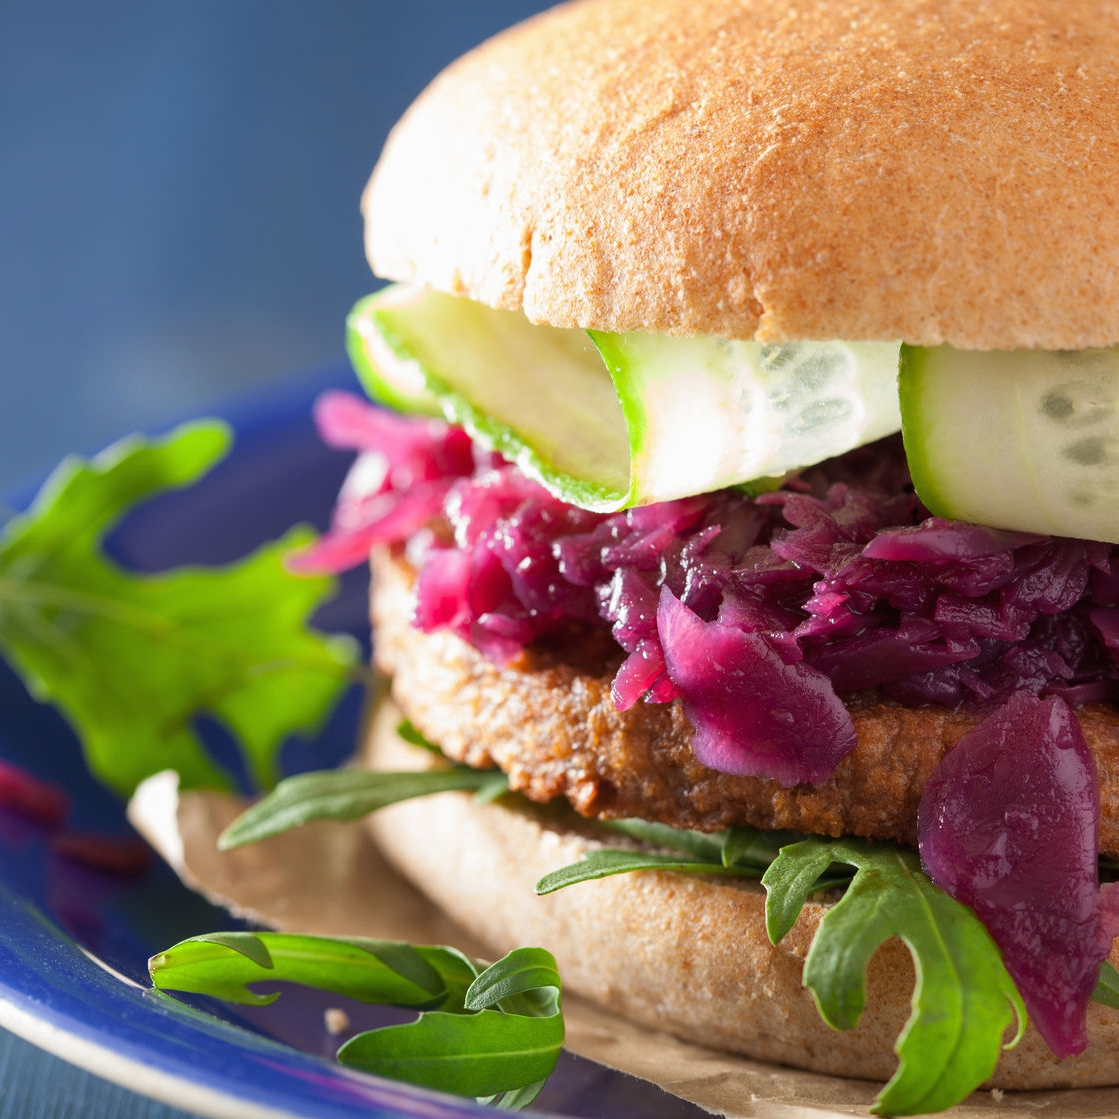 vegan soy burger with pickled, red cabbage, cucumber, arugula